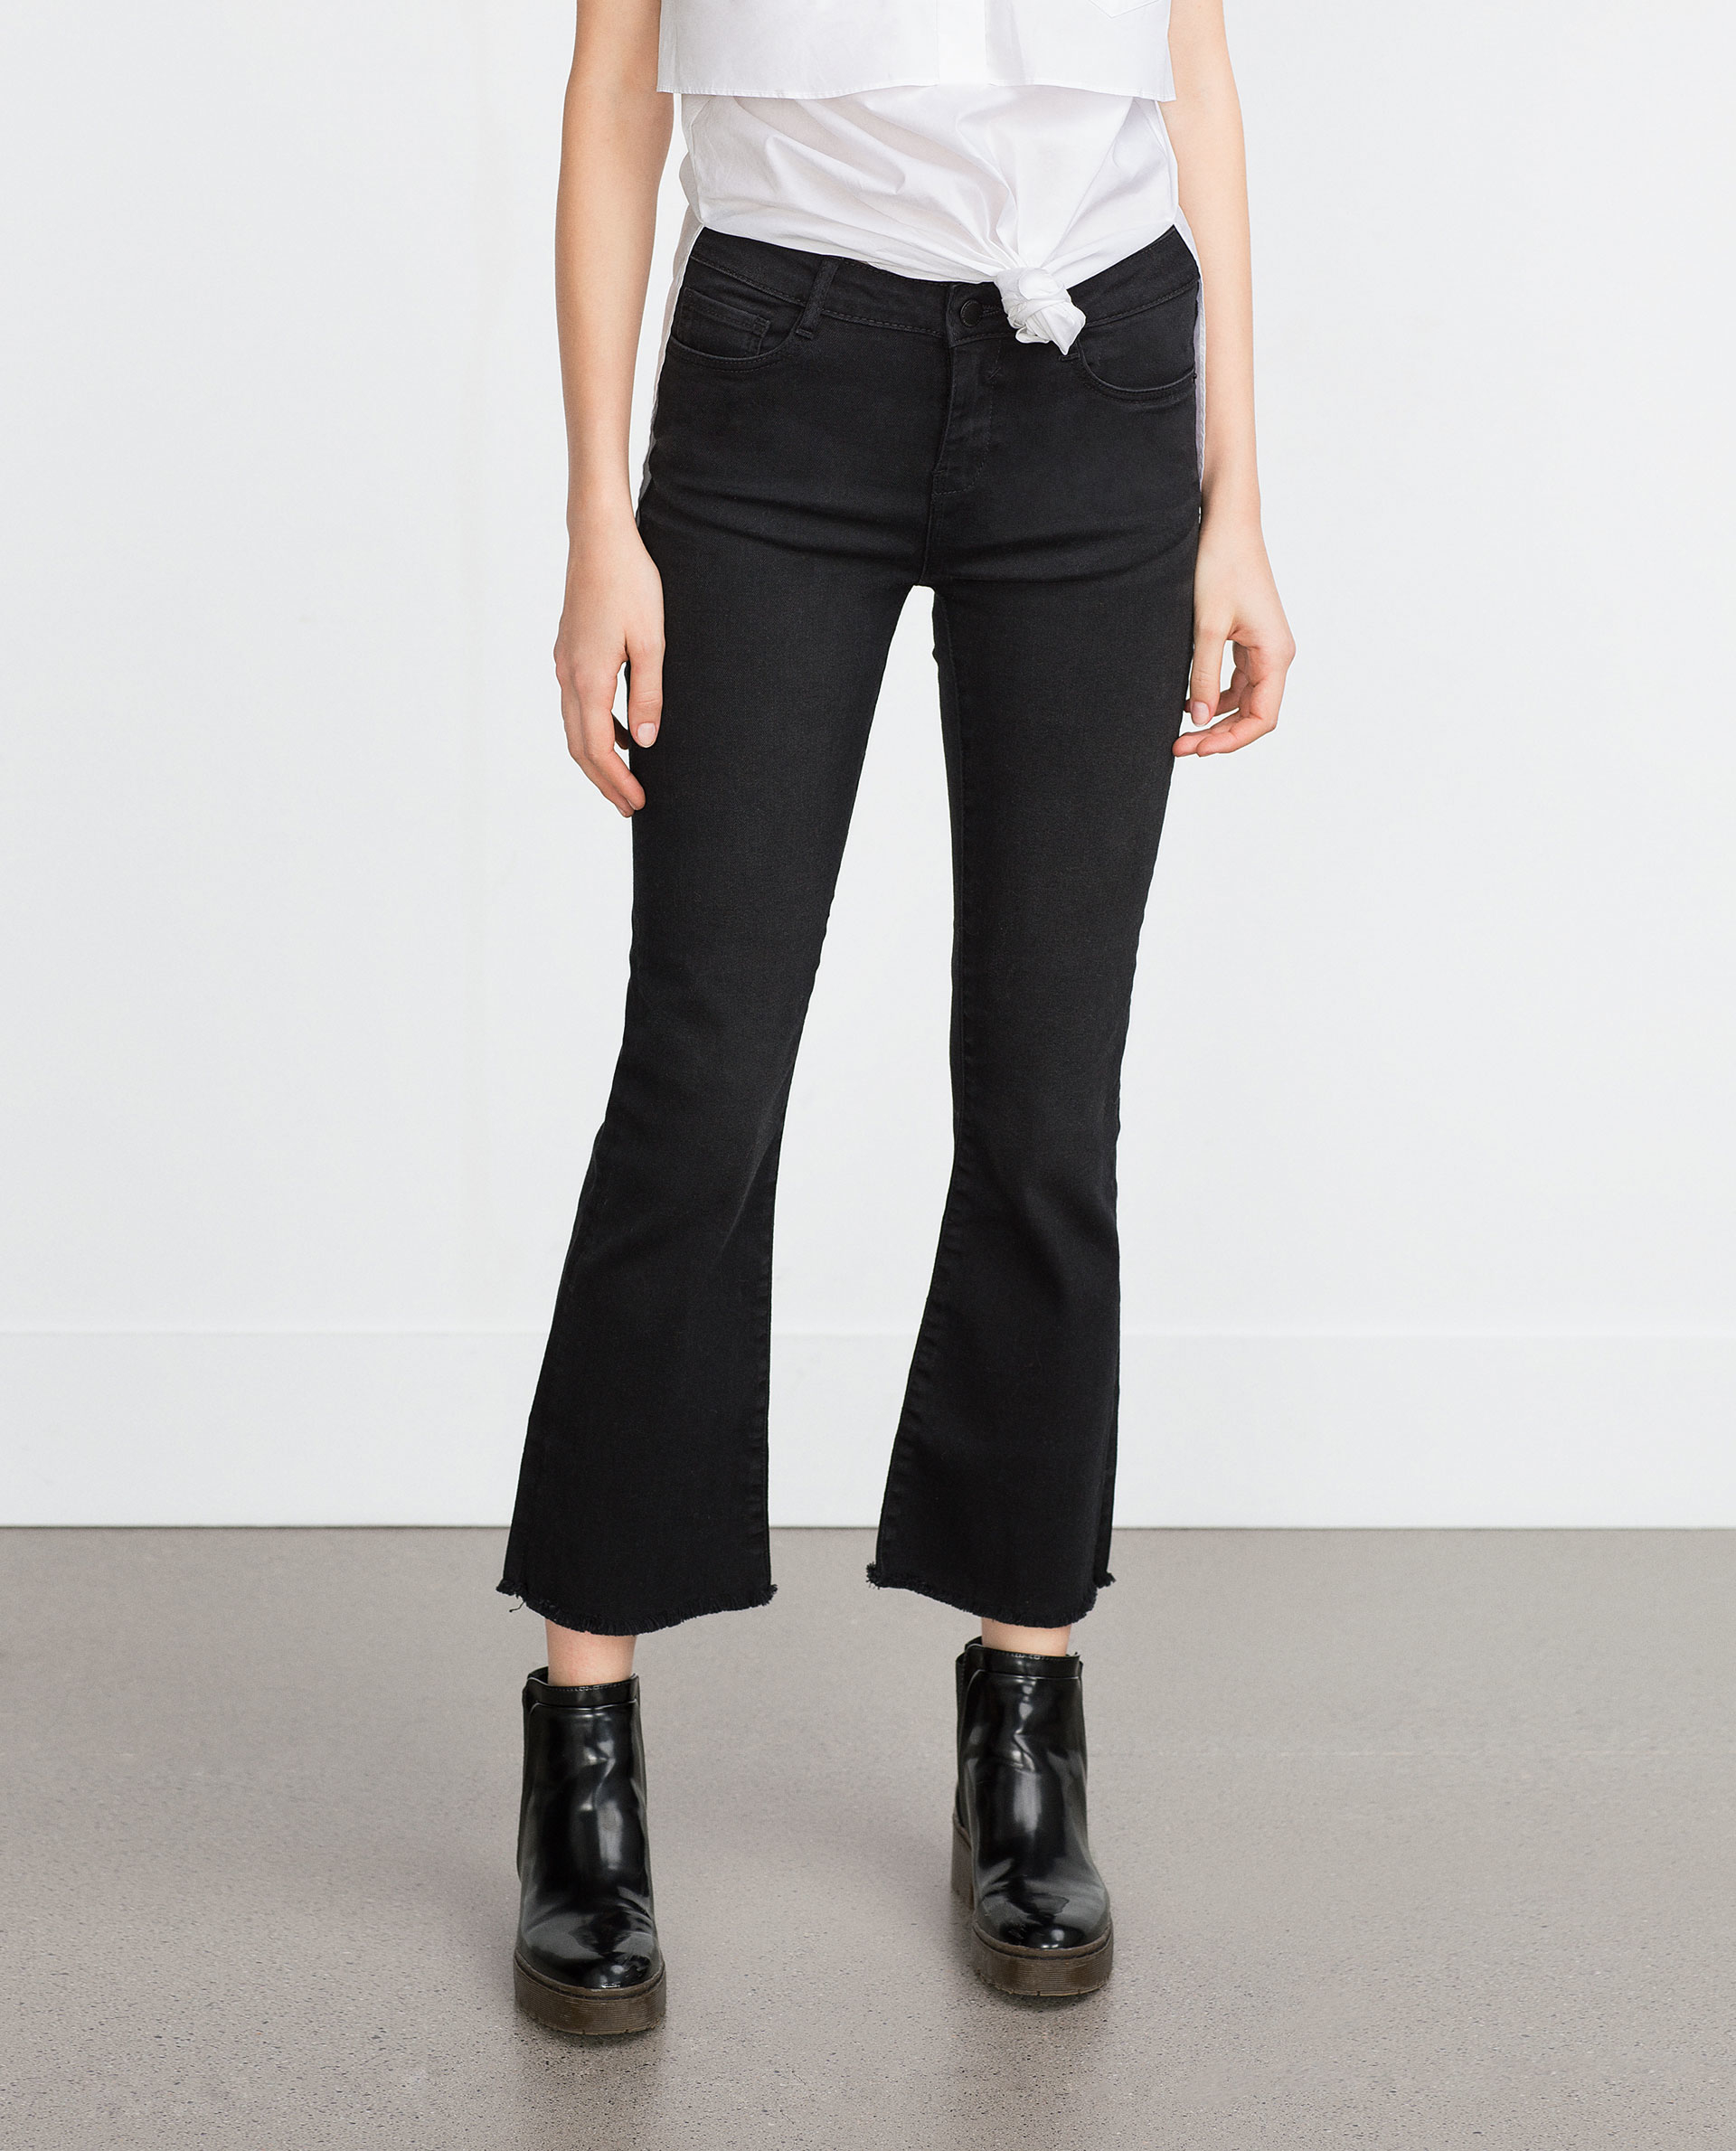 Zara Cropped Flared Jeans in Black | Lyst